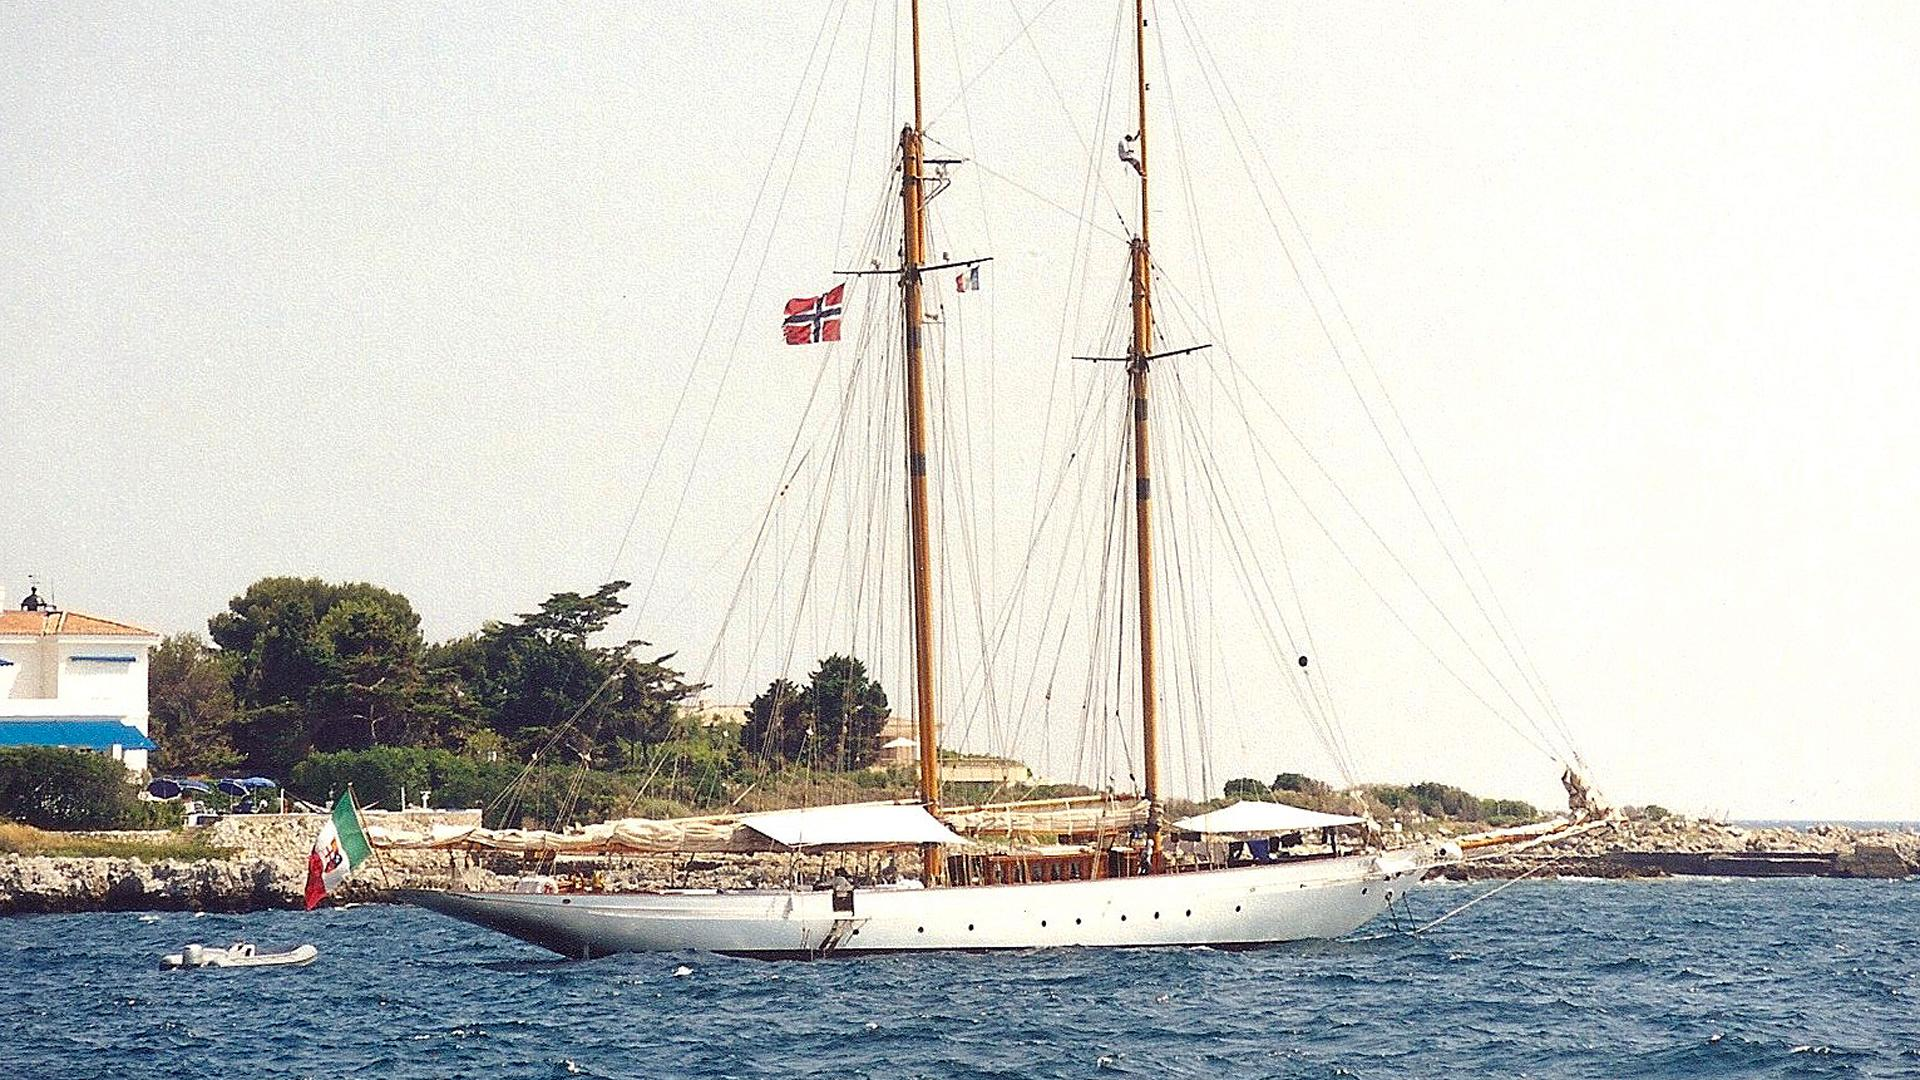 orion-sailing-yacht-camper-ncholsons-1910-45m-profile